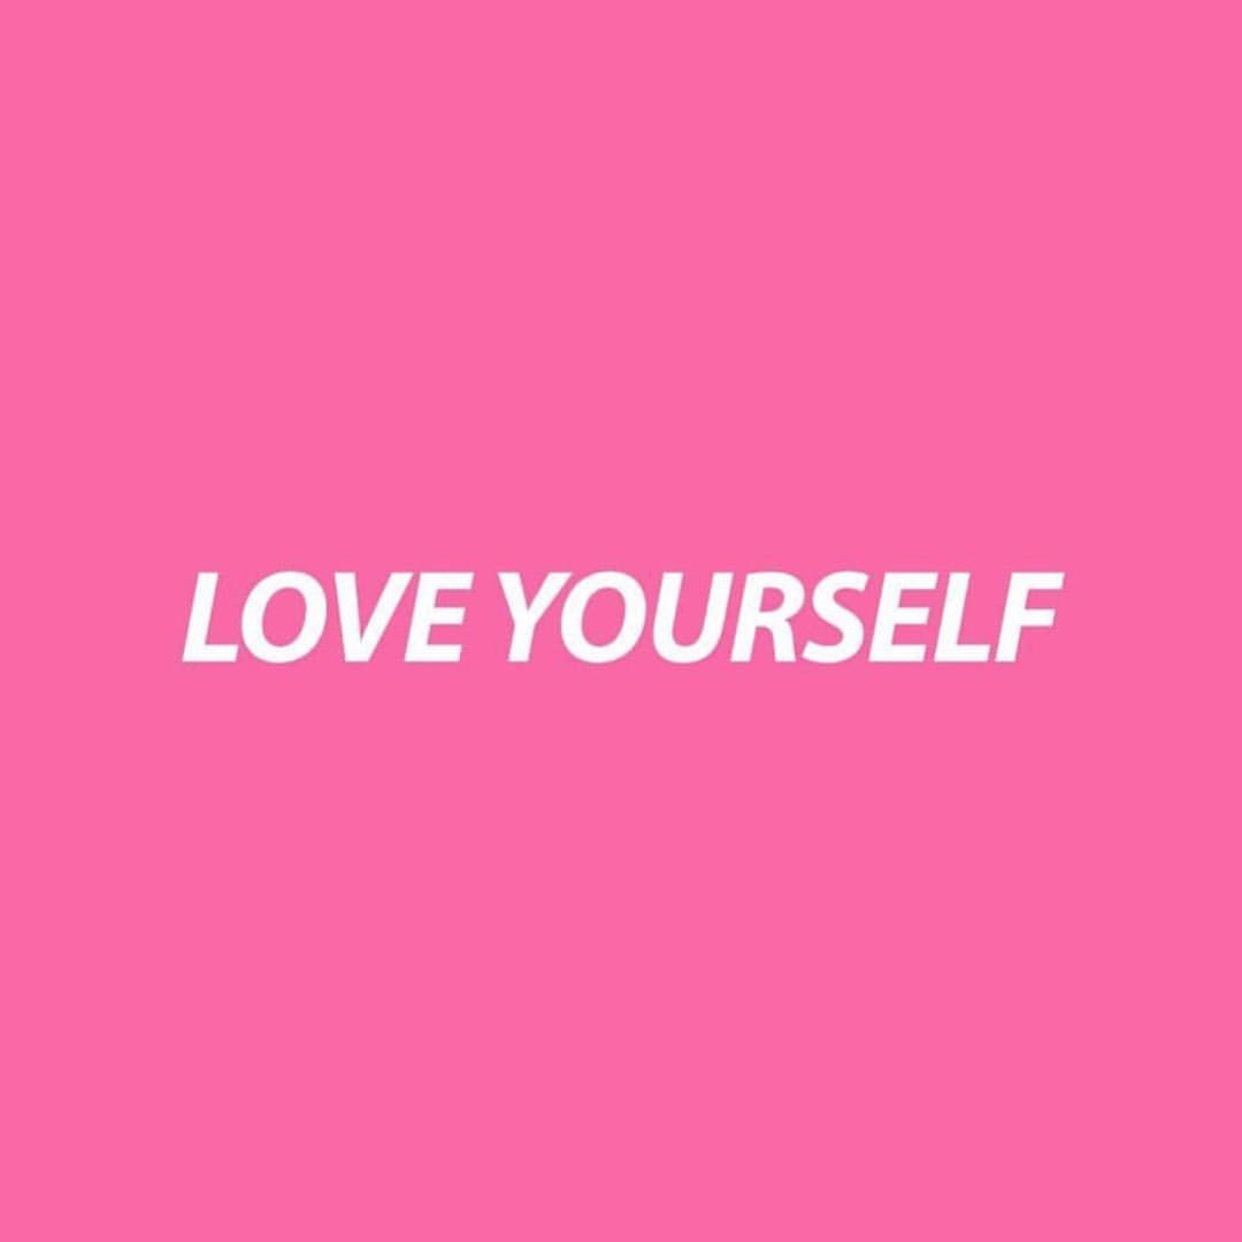 You are #1 💖